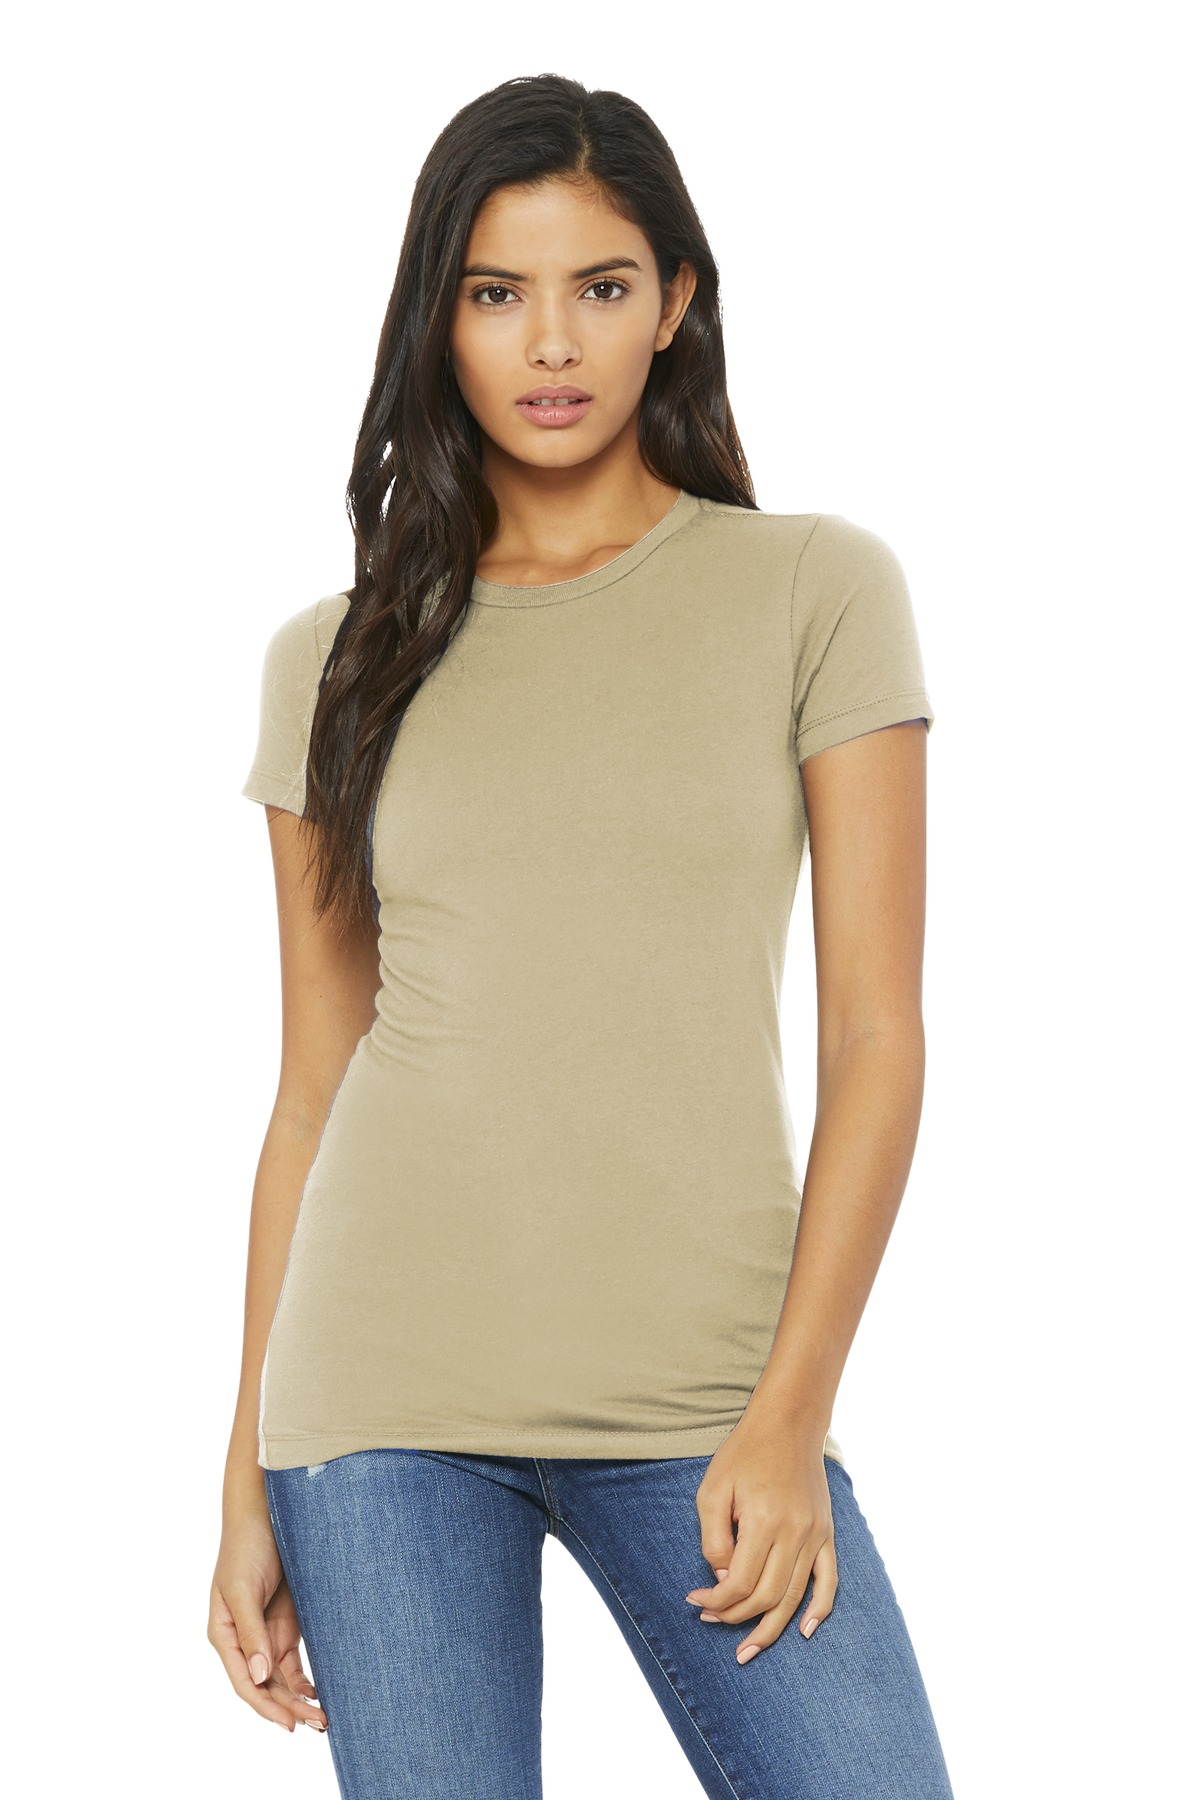 BELLA+CANVAS  ®  Women's The Favorite Tee. BC6004 - Soft Cream